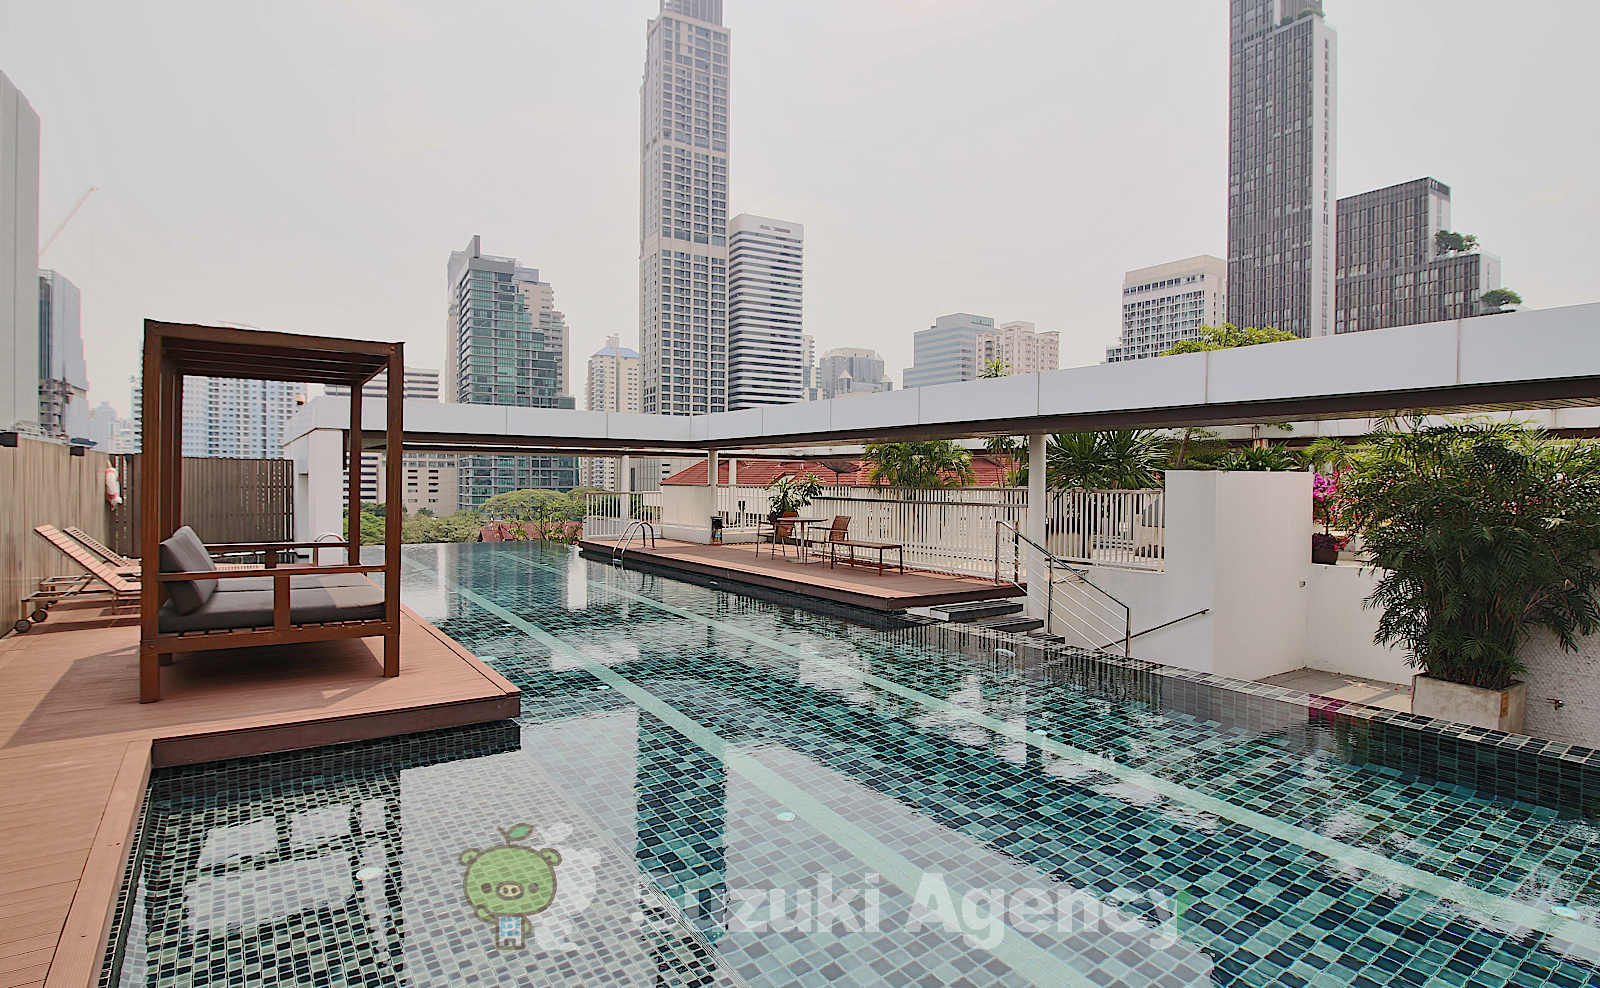 Urbana Sukhumvit 15:Interior & Exterior Photos No.7